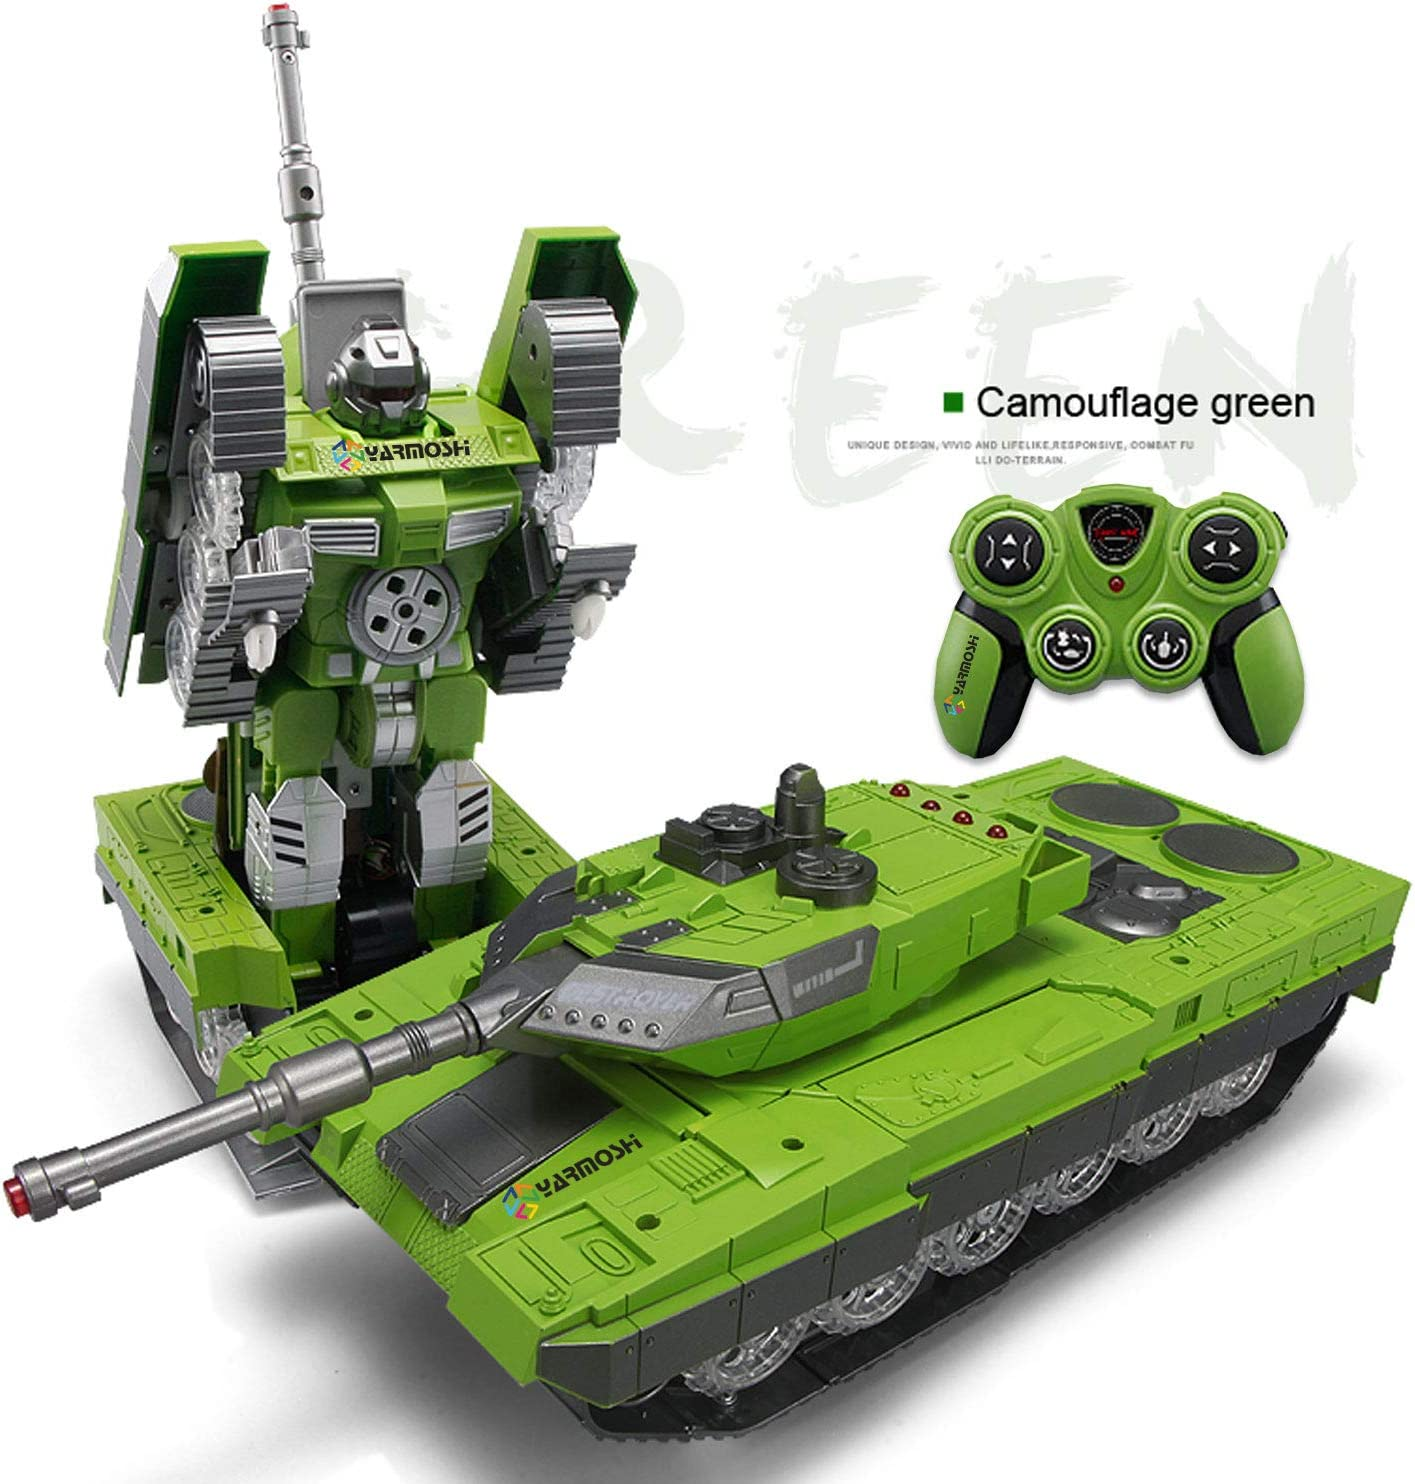 Fighting robot remote controlled shoots Bullets.